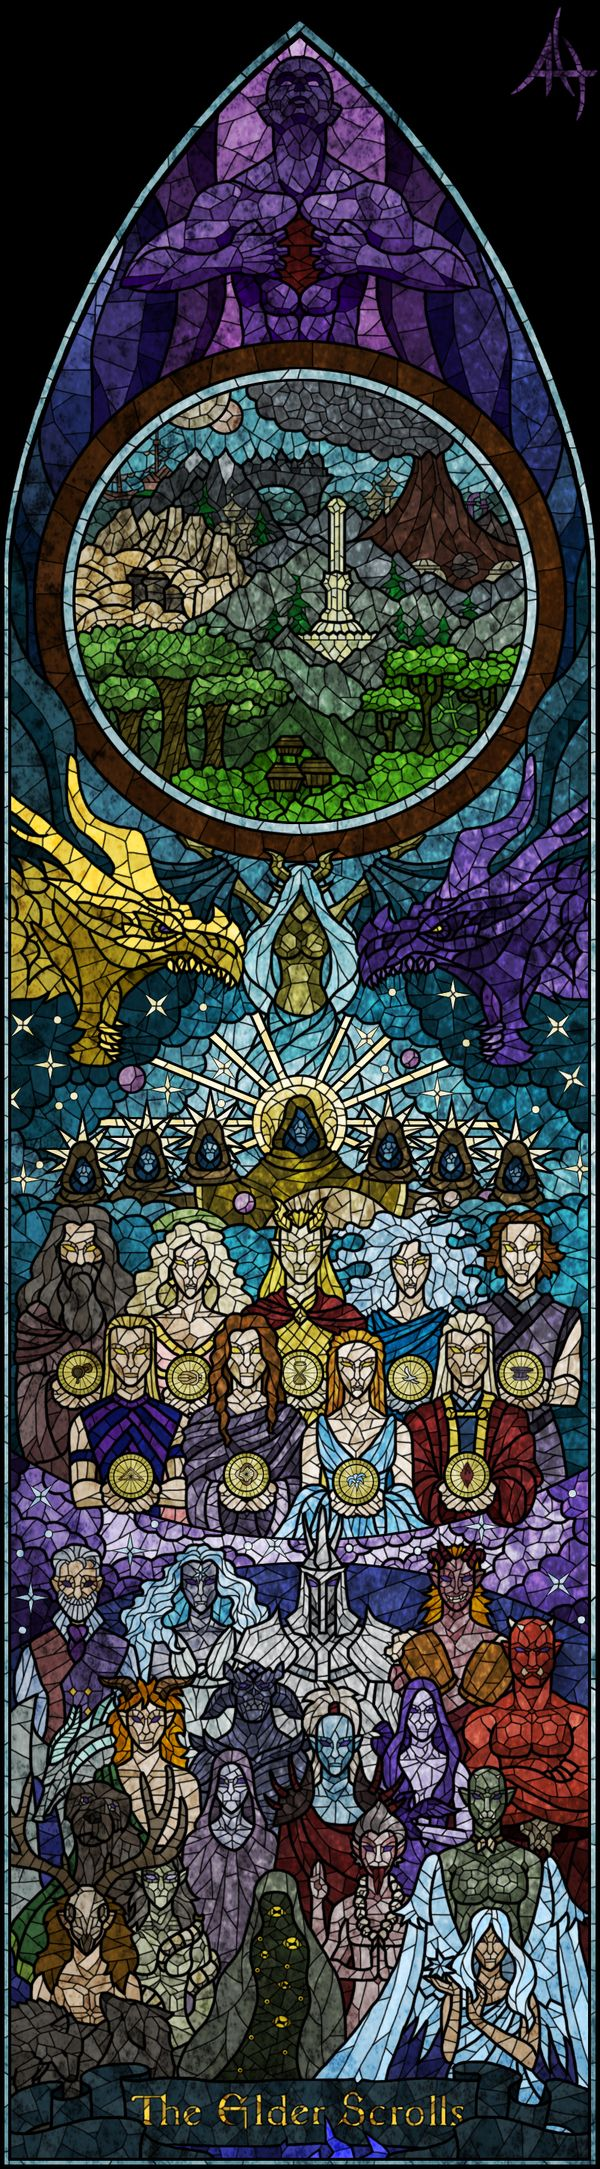 Stained glass of main and/or important religions of the Elder Scrolls games. We have the Tribunal, the Dragon Cult, the Nine Divines, and the Daedric Princes. In the circle, the provinces of Tamriel are shown.